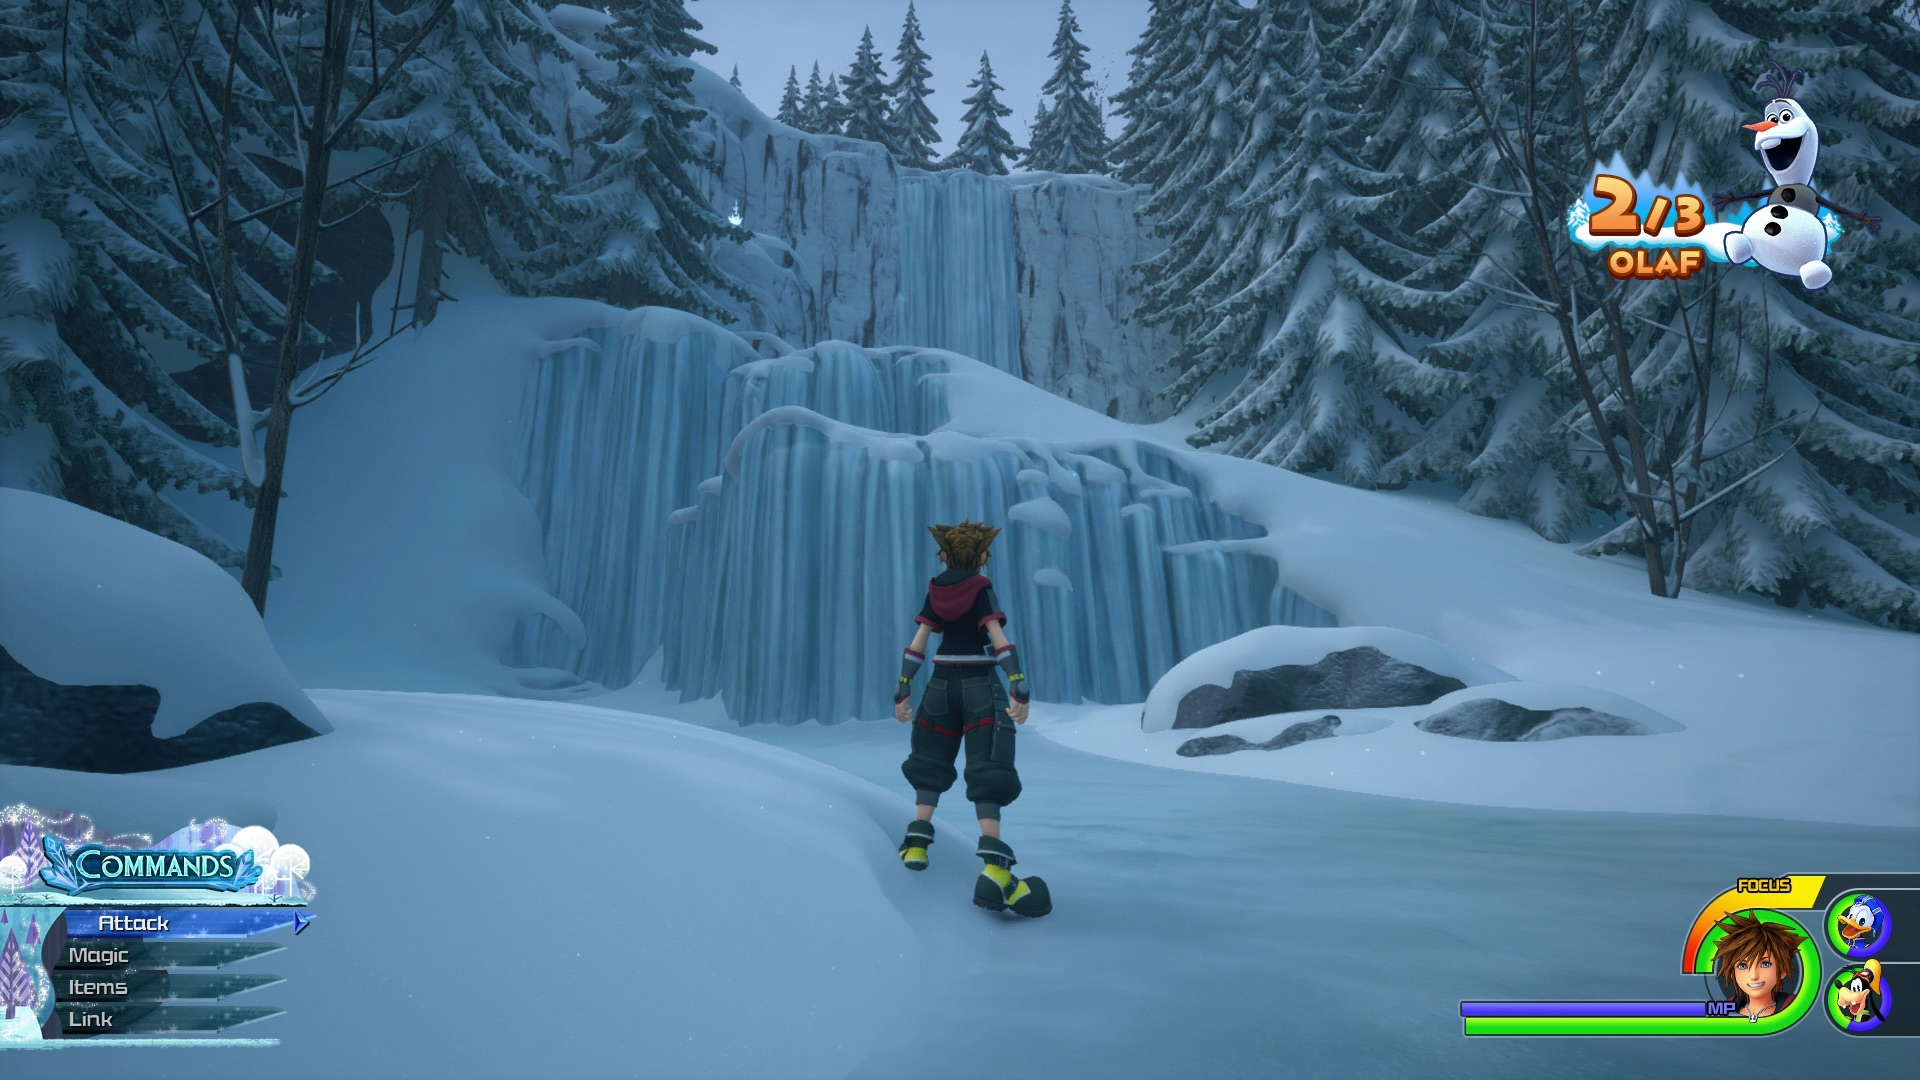 Kingdom Hearts 3 Photo Mission guide: how to complete all